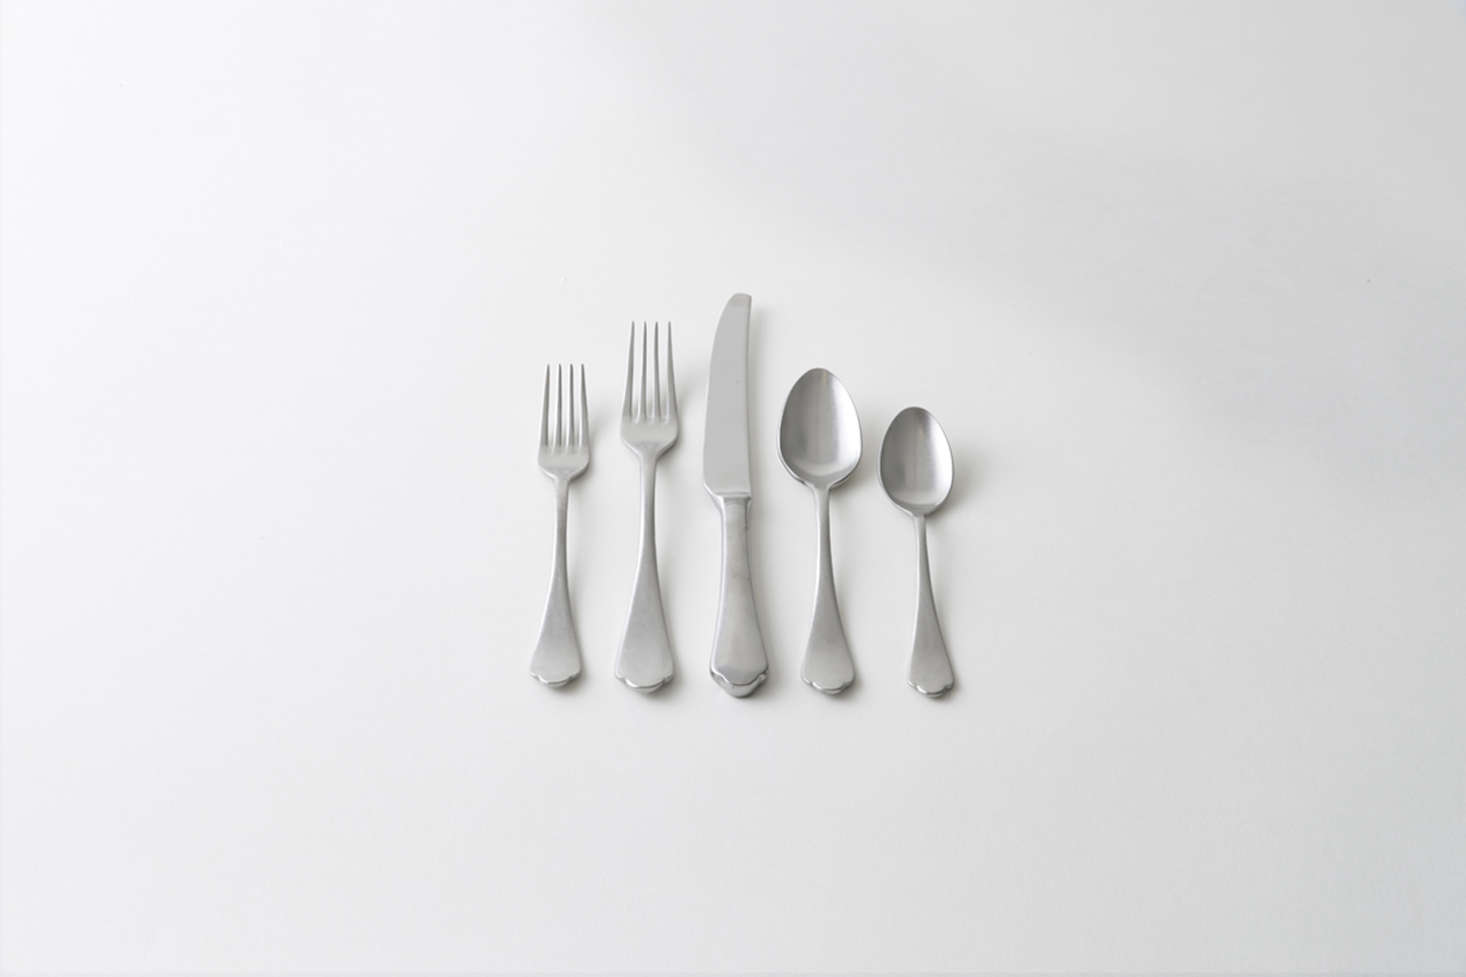 """From Italian brand Mepra, the Dolcevita Flatware in Vintage Pewter has, as retailer March puts it, """"a classic scalloped edge and modern finish."""" Made in Italy, the set is $72 at March."""